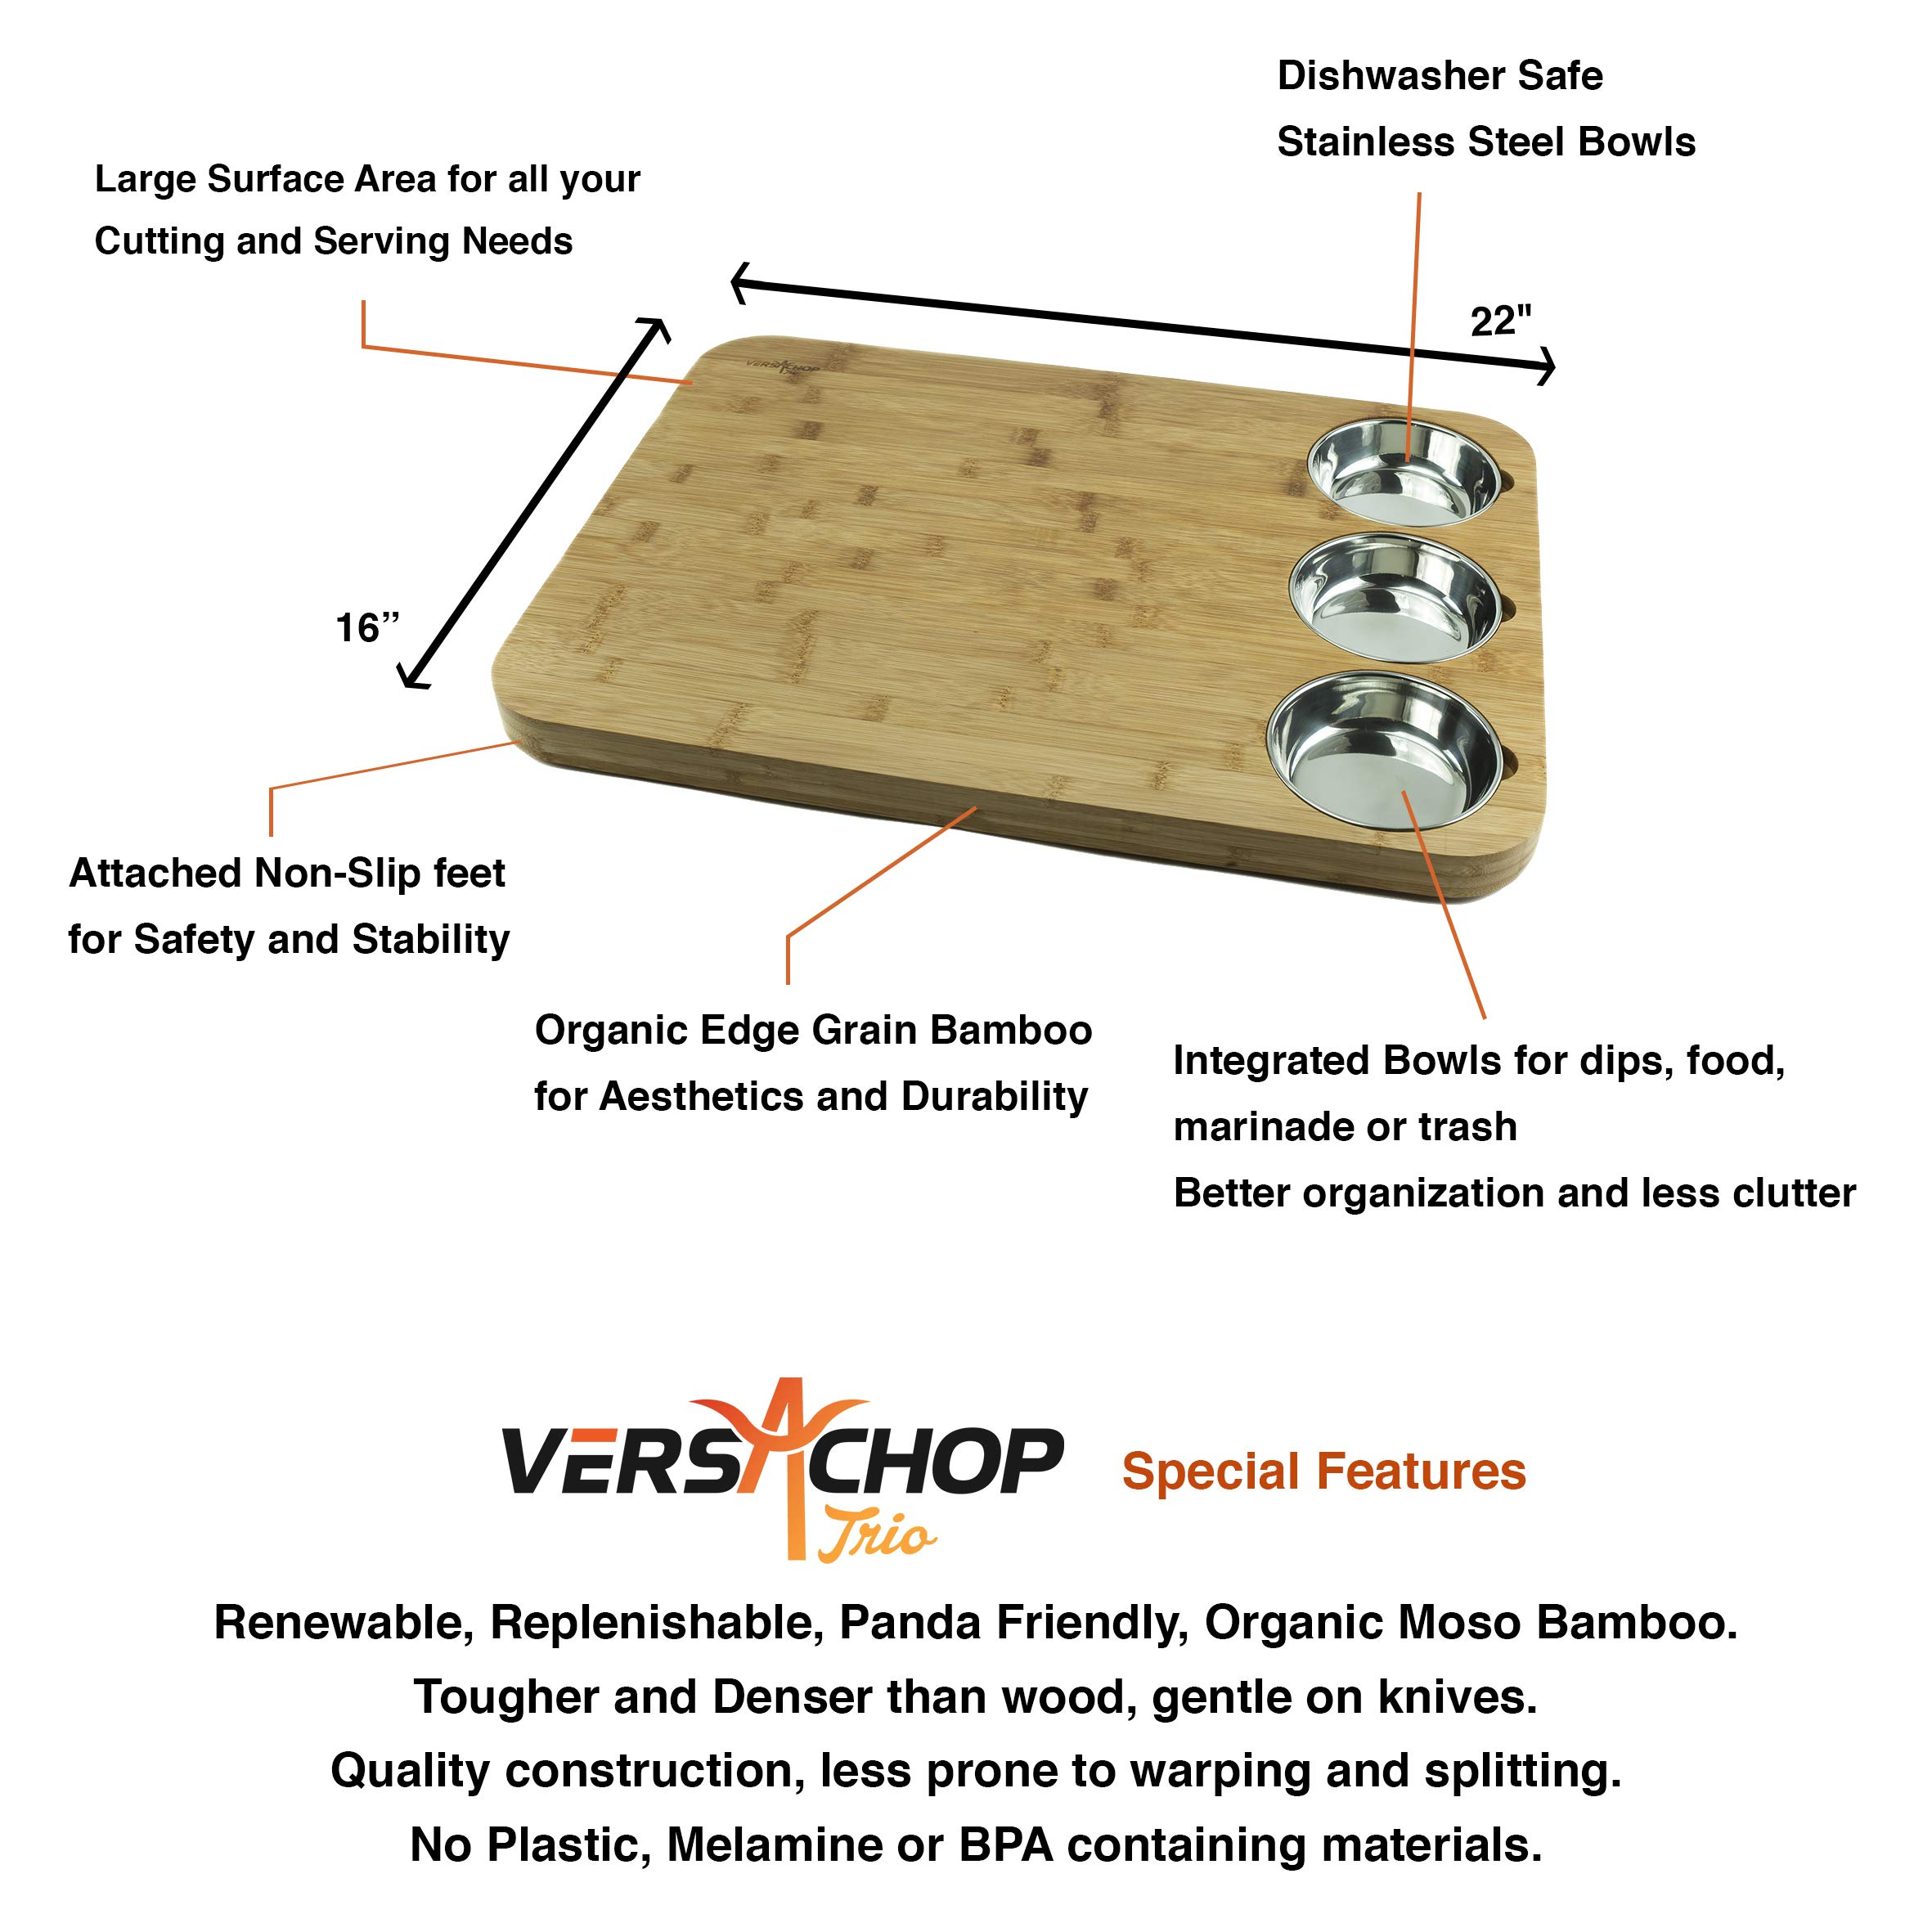 VERSACHOP Trio, Extra Large 22'' X 16'' Kitchen Cutting Board and Butcher Block made from Totally Natural Organic Moso Bamboo with Three Stainless Steel Bowls by VersaChop (Image #7)